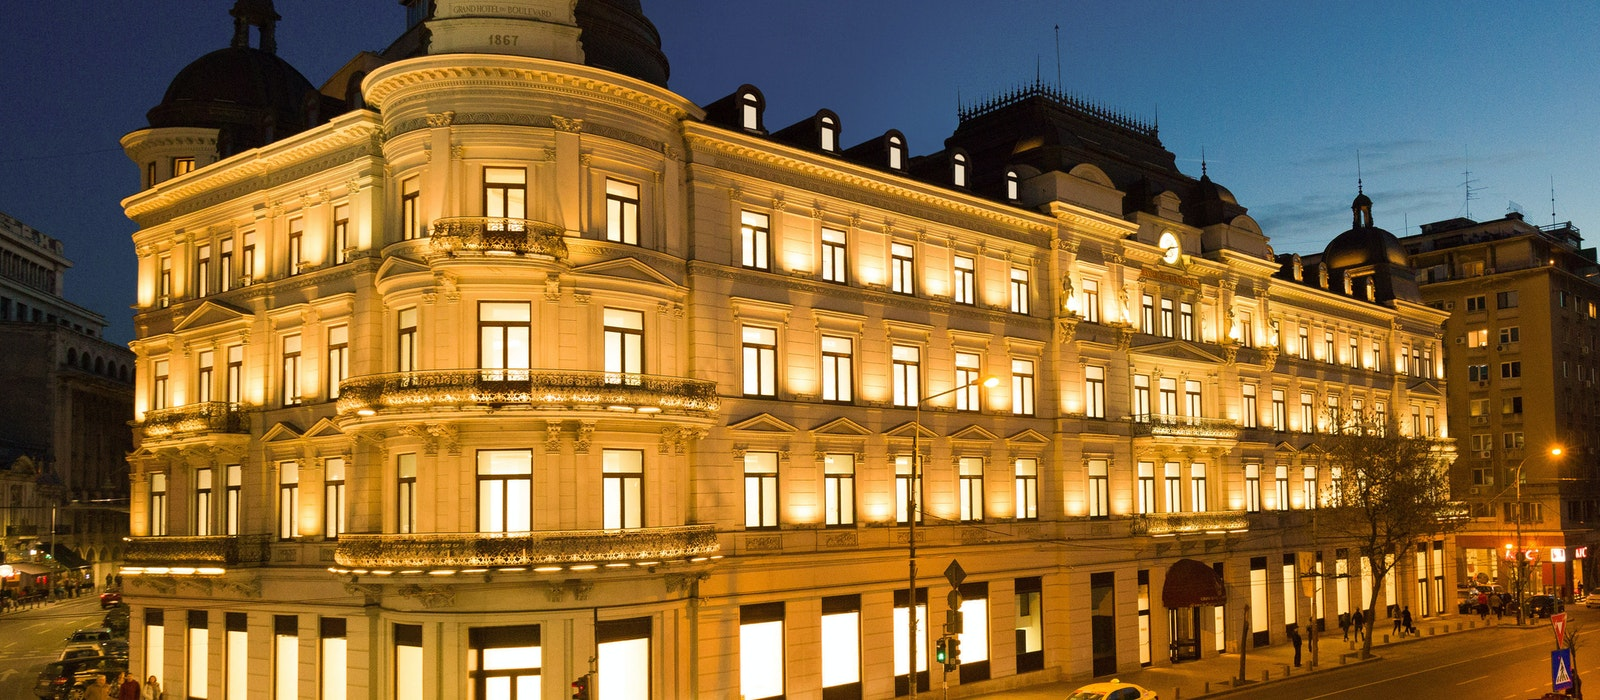 The Grand Hotel du Boulevard reopens as the Corinthia Bucharest in Romania in 2019.